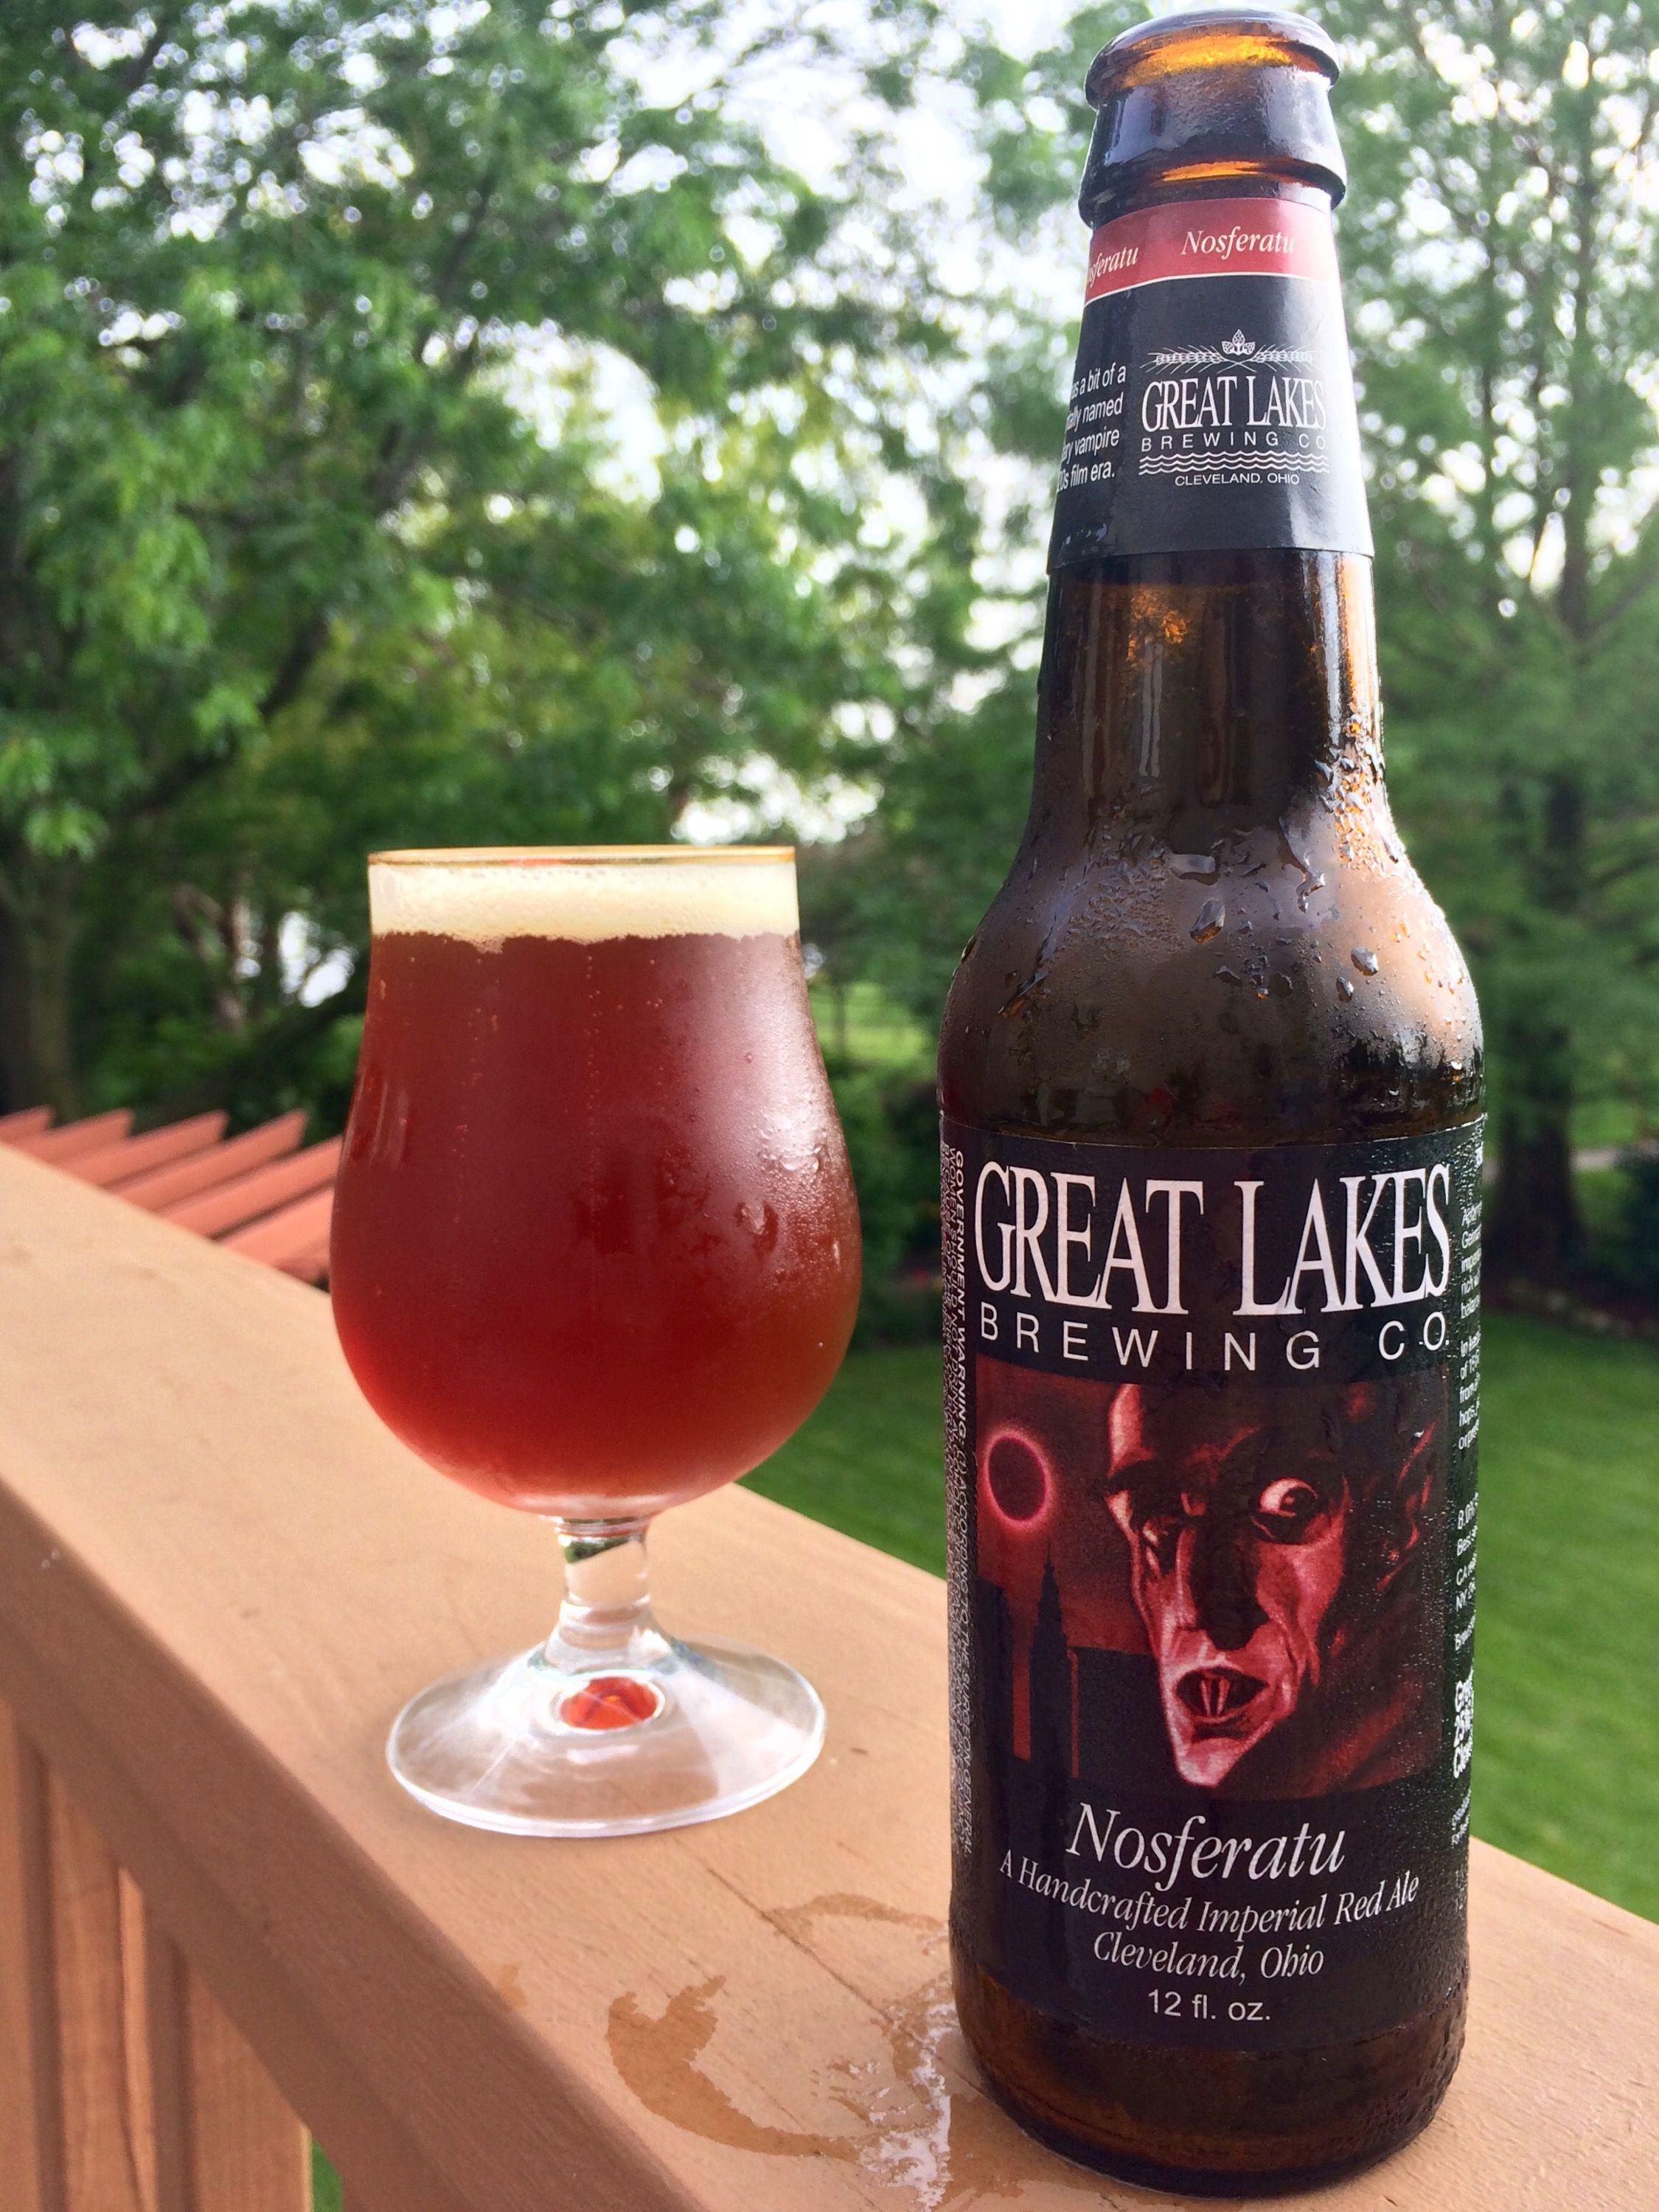 772 Great Lakes Brewing Nosferatu Imperial Red Ale Beer Pictures Great Lakes Brewing